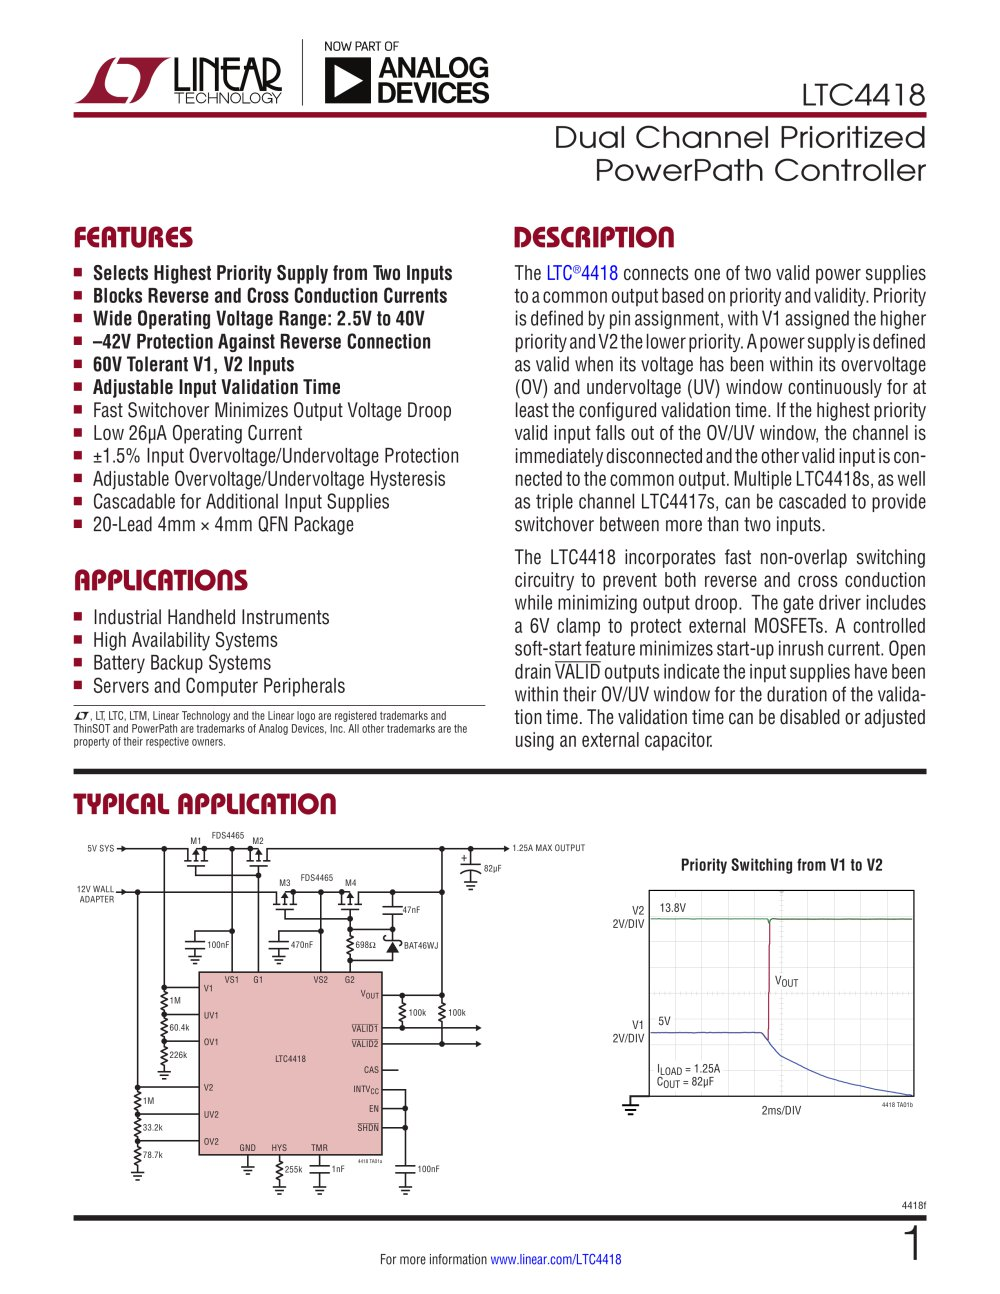 Ltc4418 Dual Channel Prioritized Powerpath Controller Linear Synchronous Buckboost Led Driver Technology 1 30 Pages